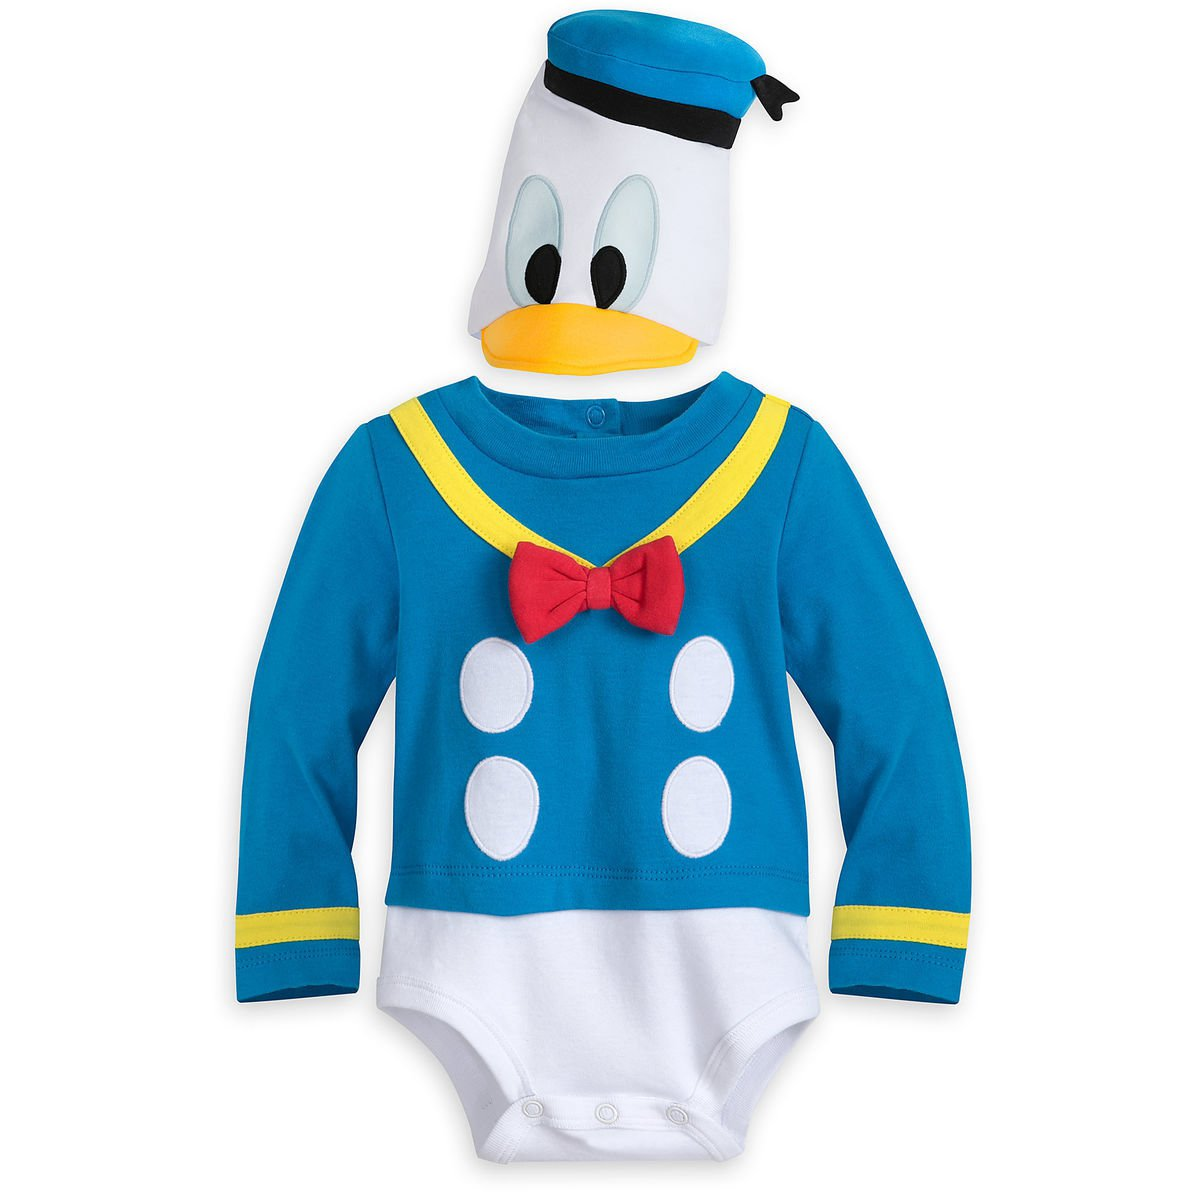 Disney Store Donald Duck Baby Costume Bodysuit Hat 0-3 Months 2018 New